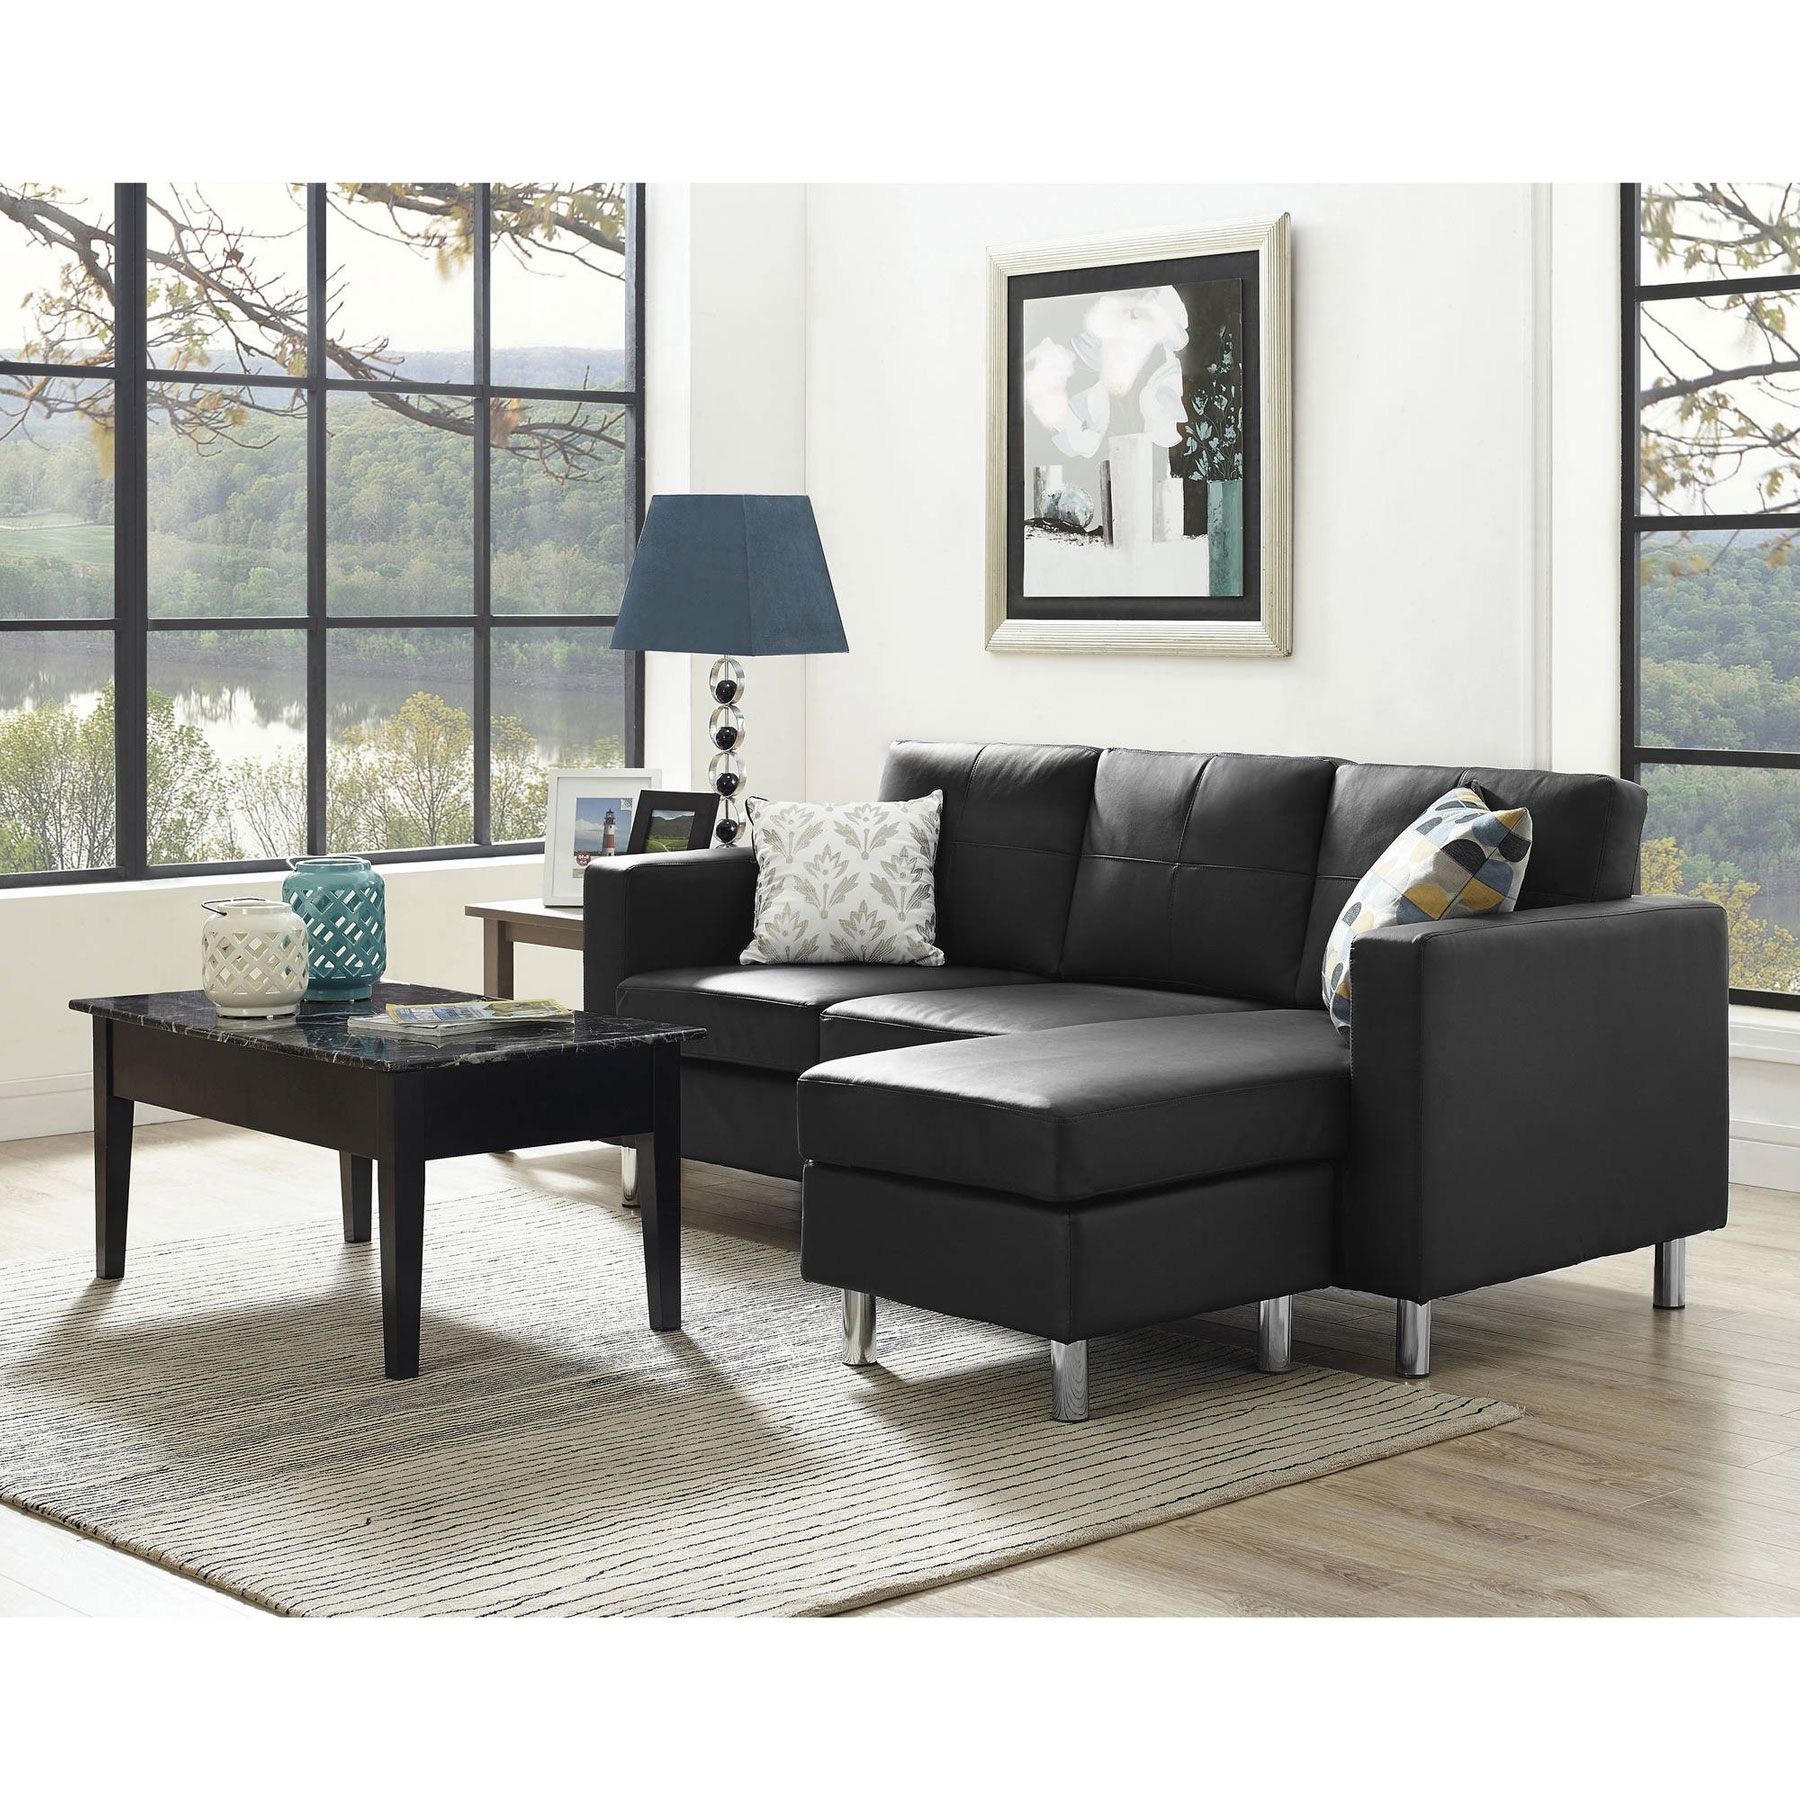 Popular Sectional Sofa: Small Spaces Sectional Sets Small L Shaped Leather With Regard To Sectional Sofas For Small Rooms (View 8 of 20)